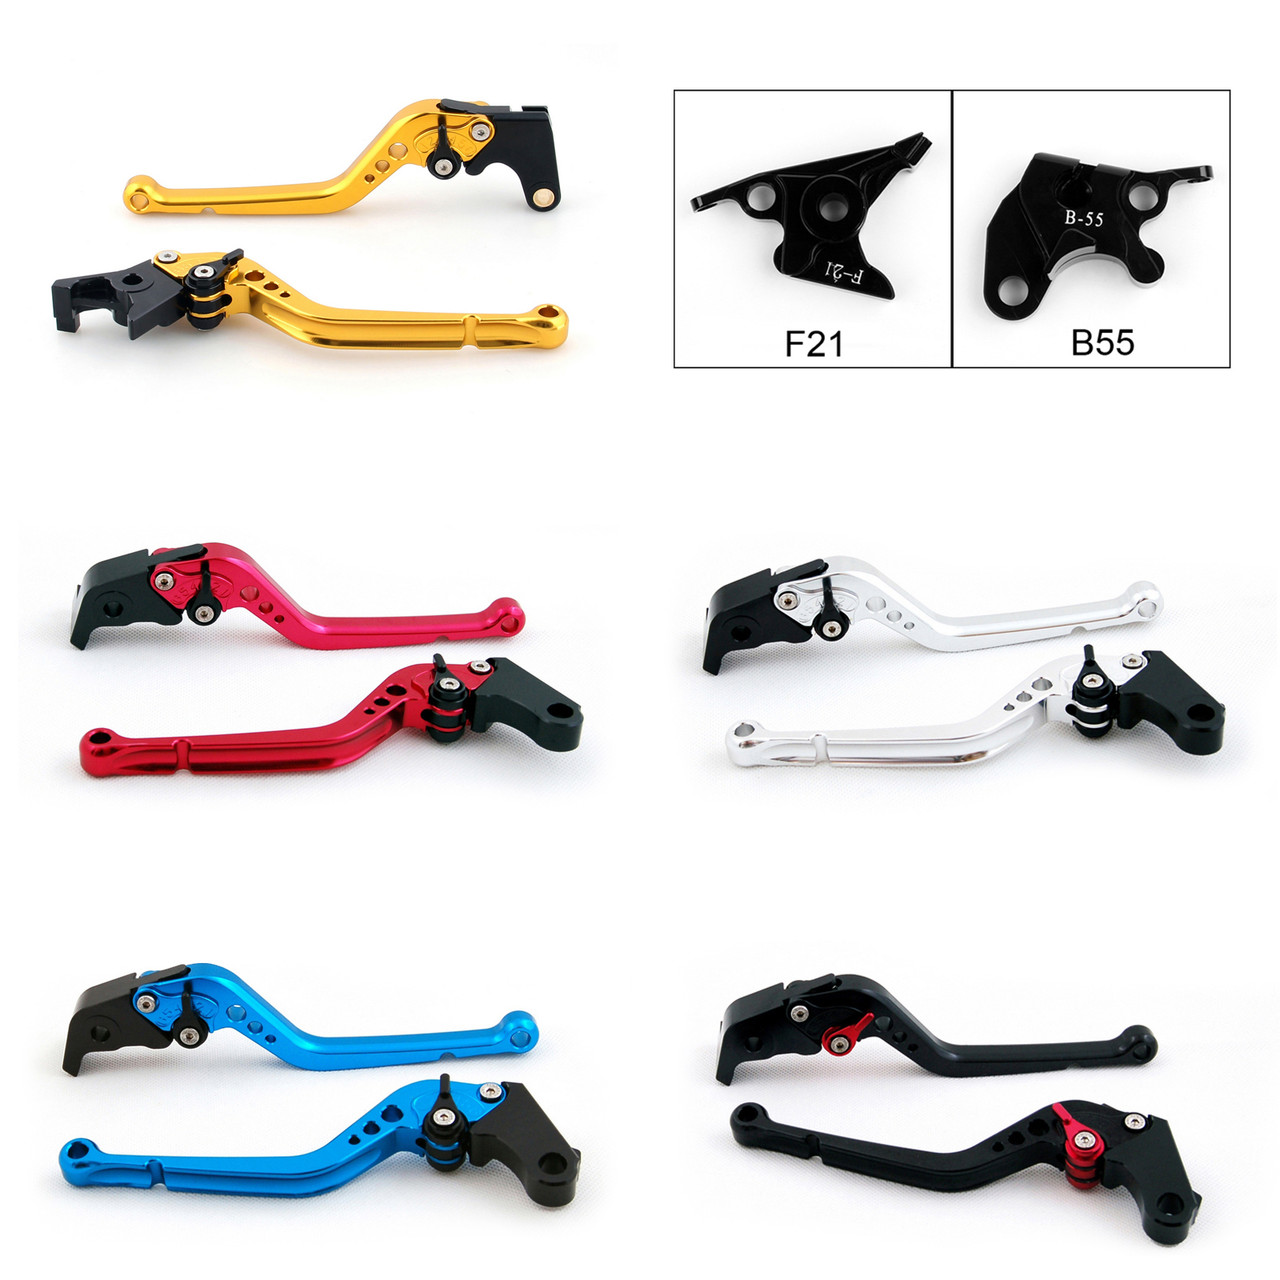 Standard Staff Length Adjustable Brake Clutch Levers Buell XB12 all models up to 08 only 2004-2008 (F-21/B-55)